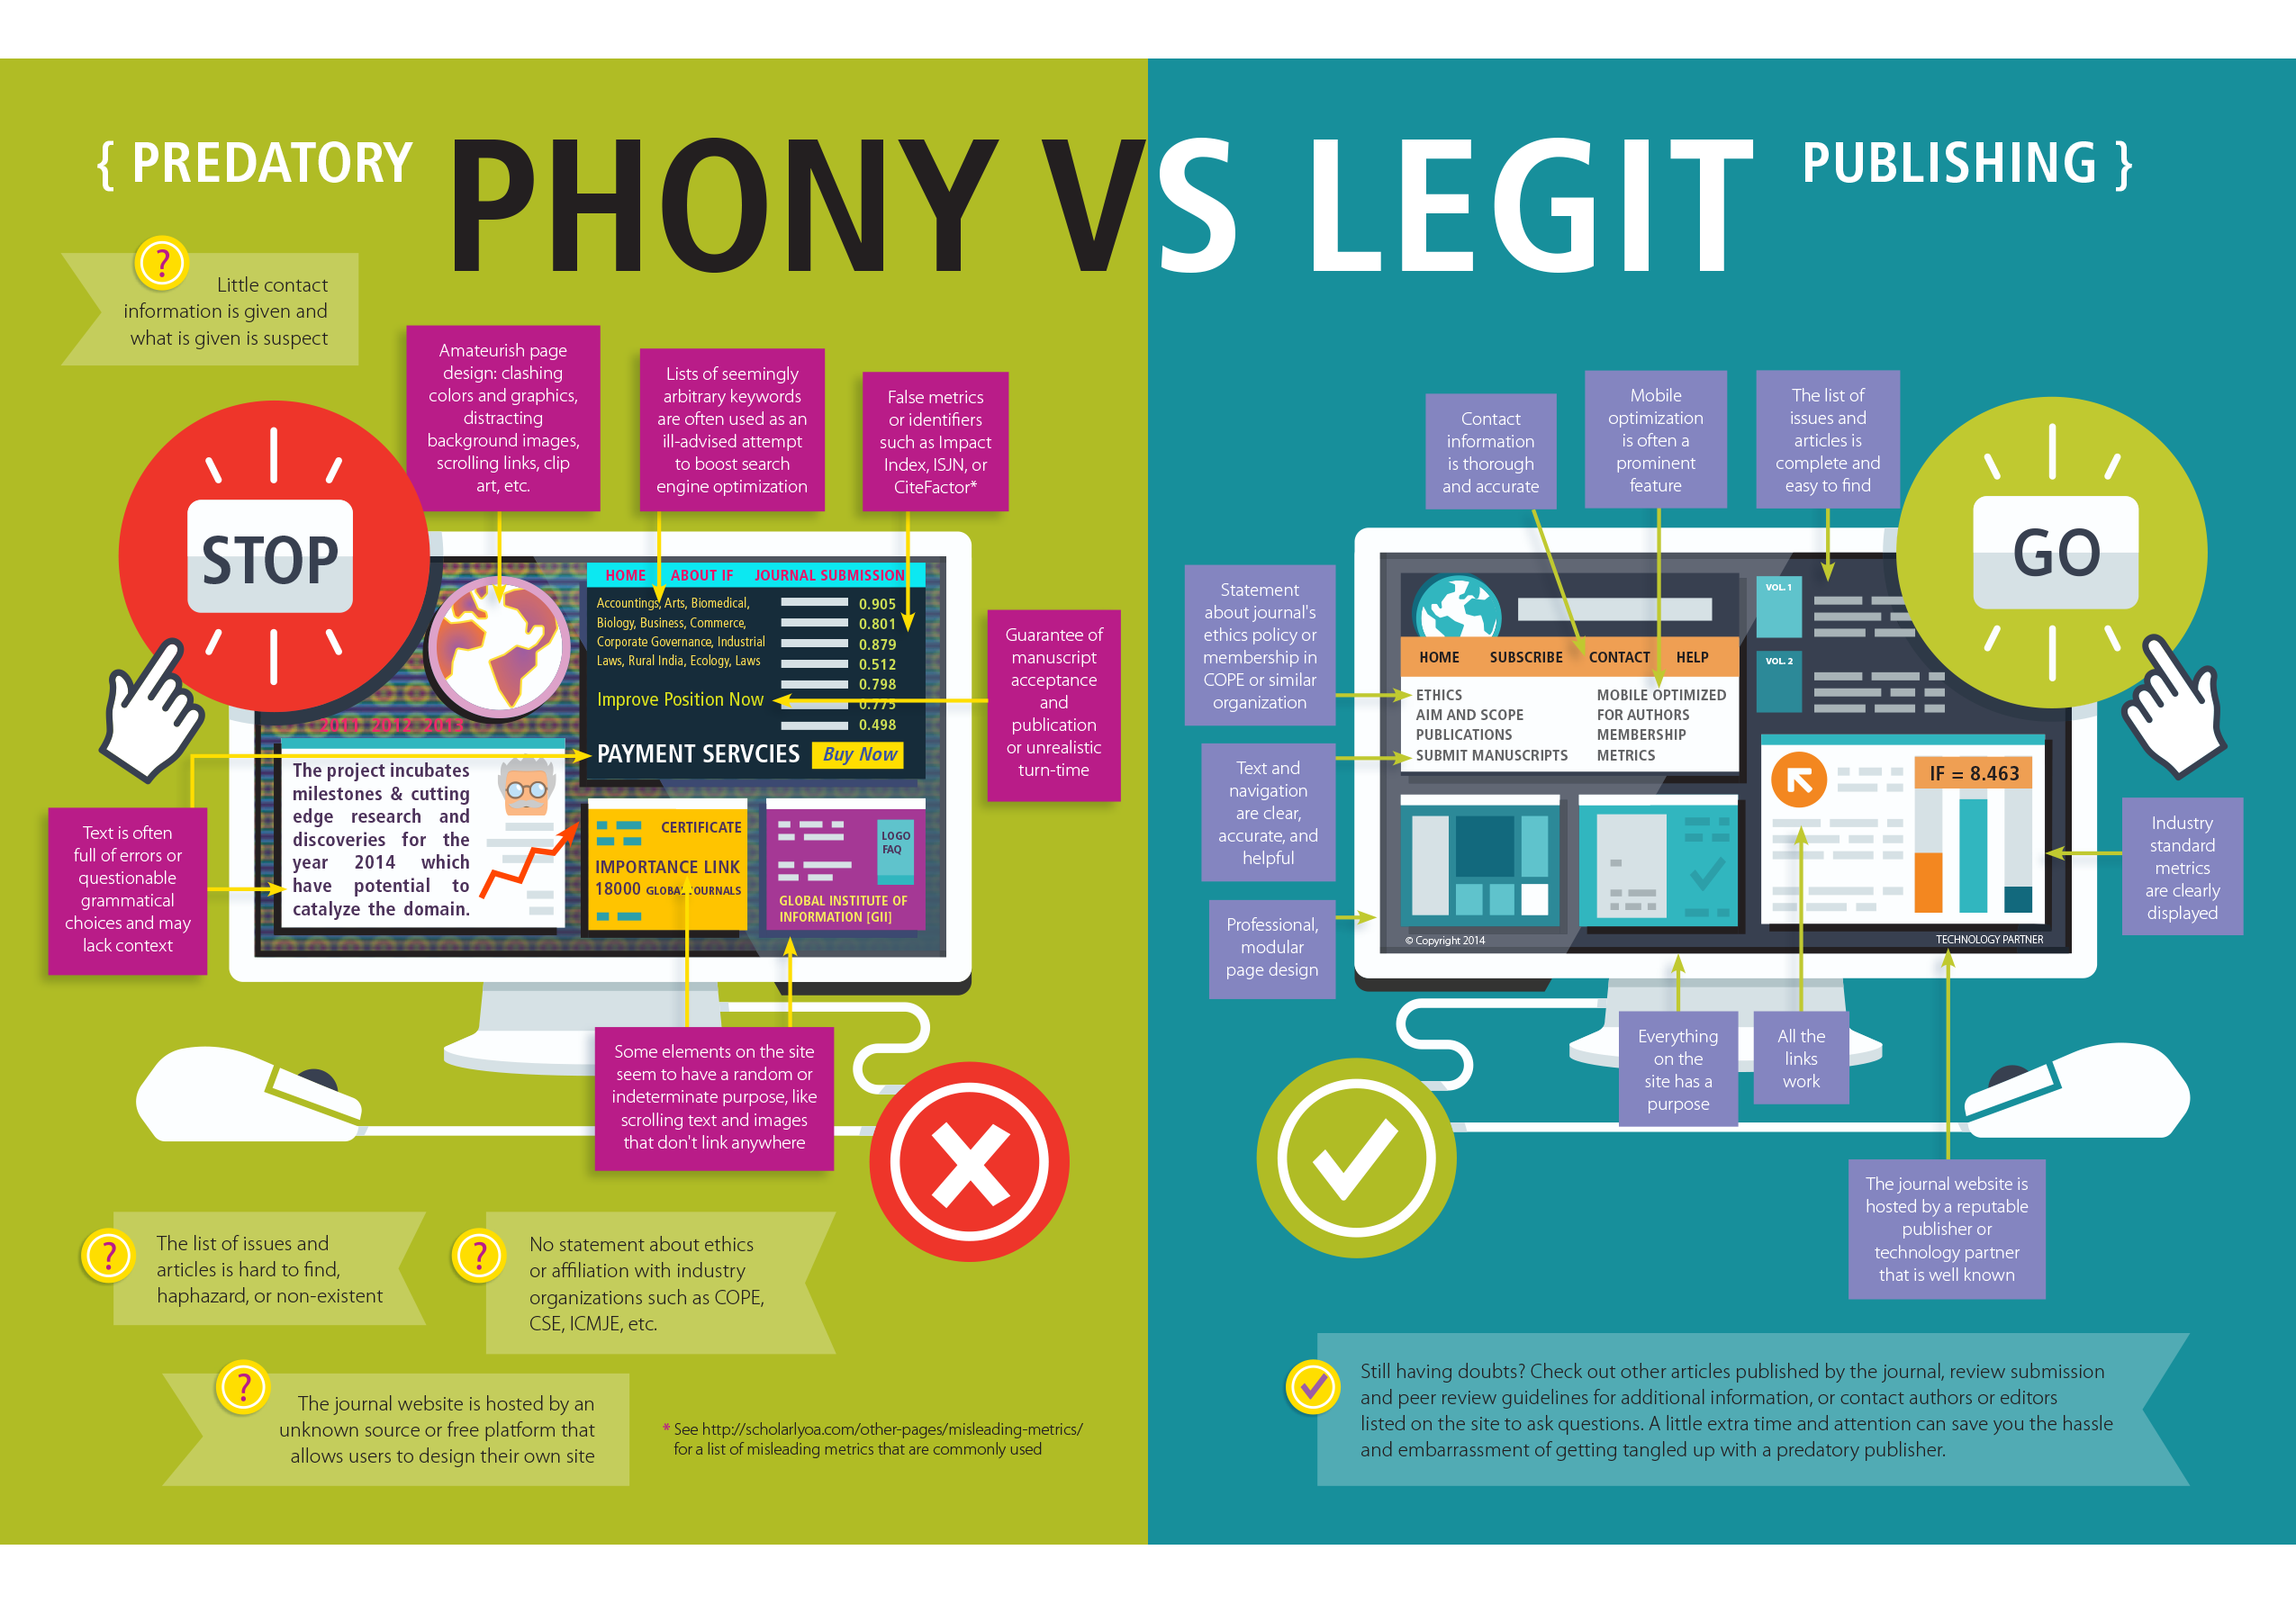 Phony vs Legit Publishing